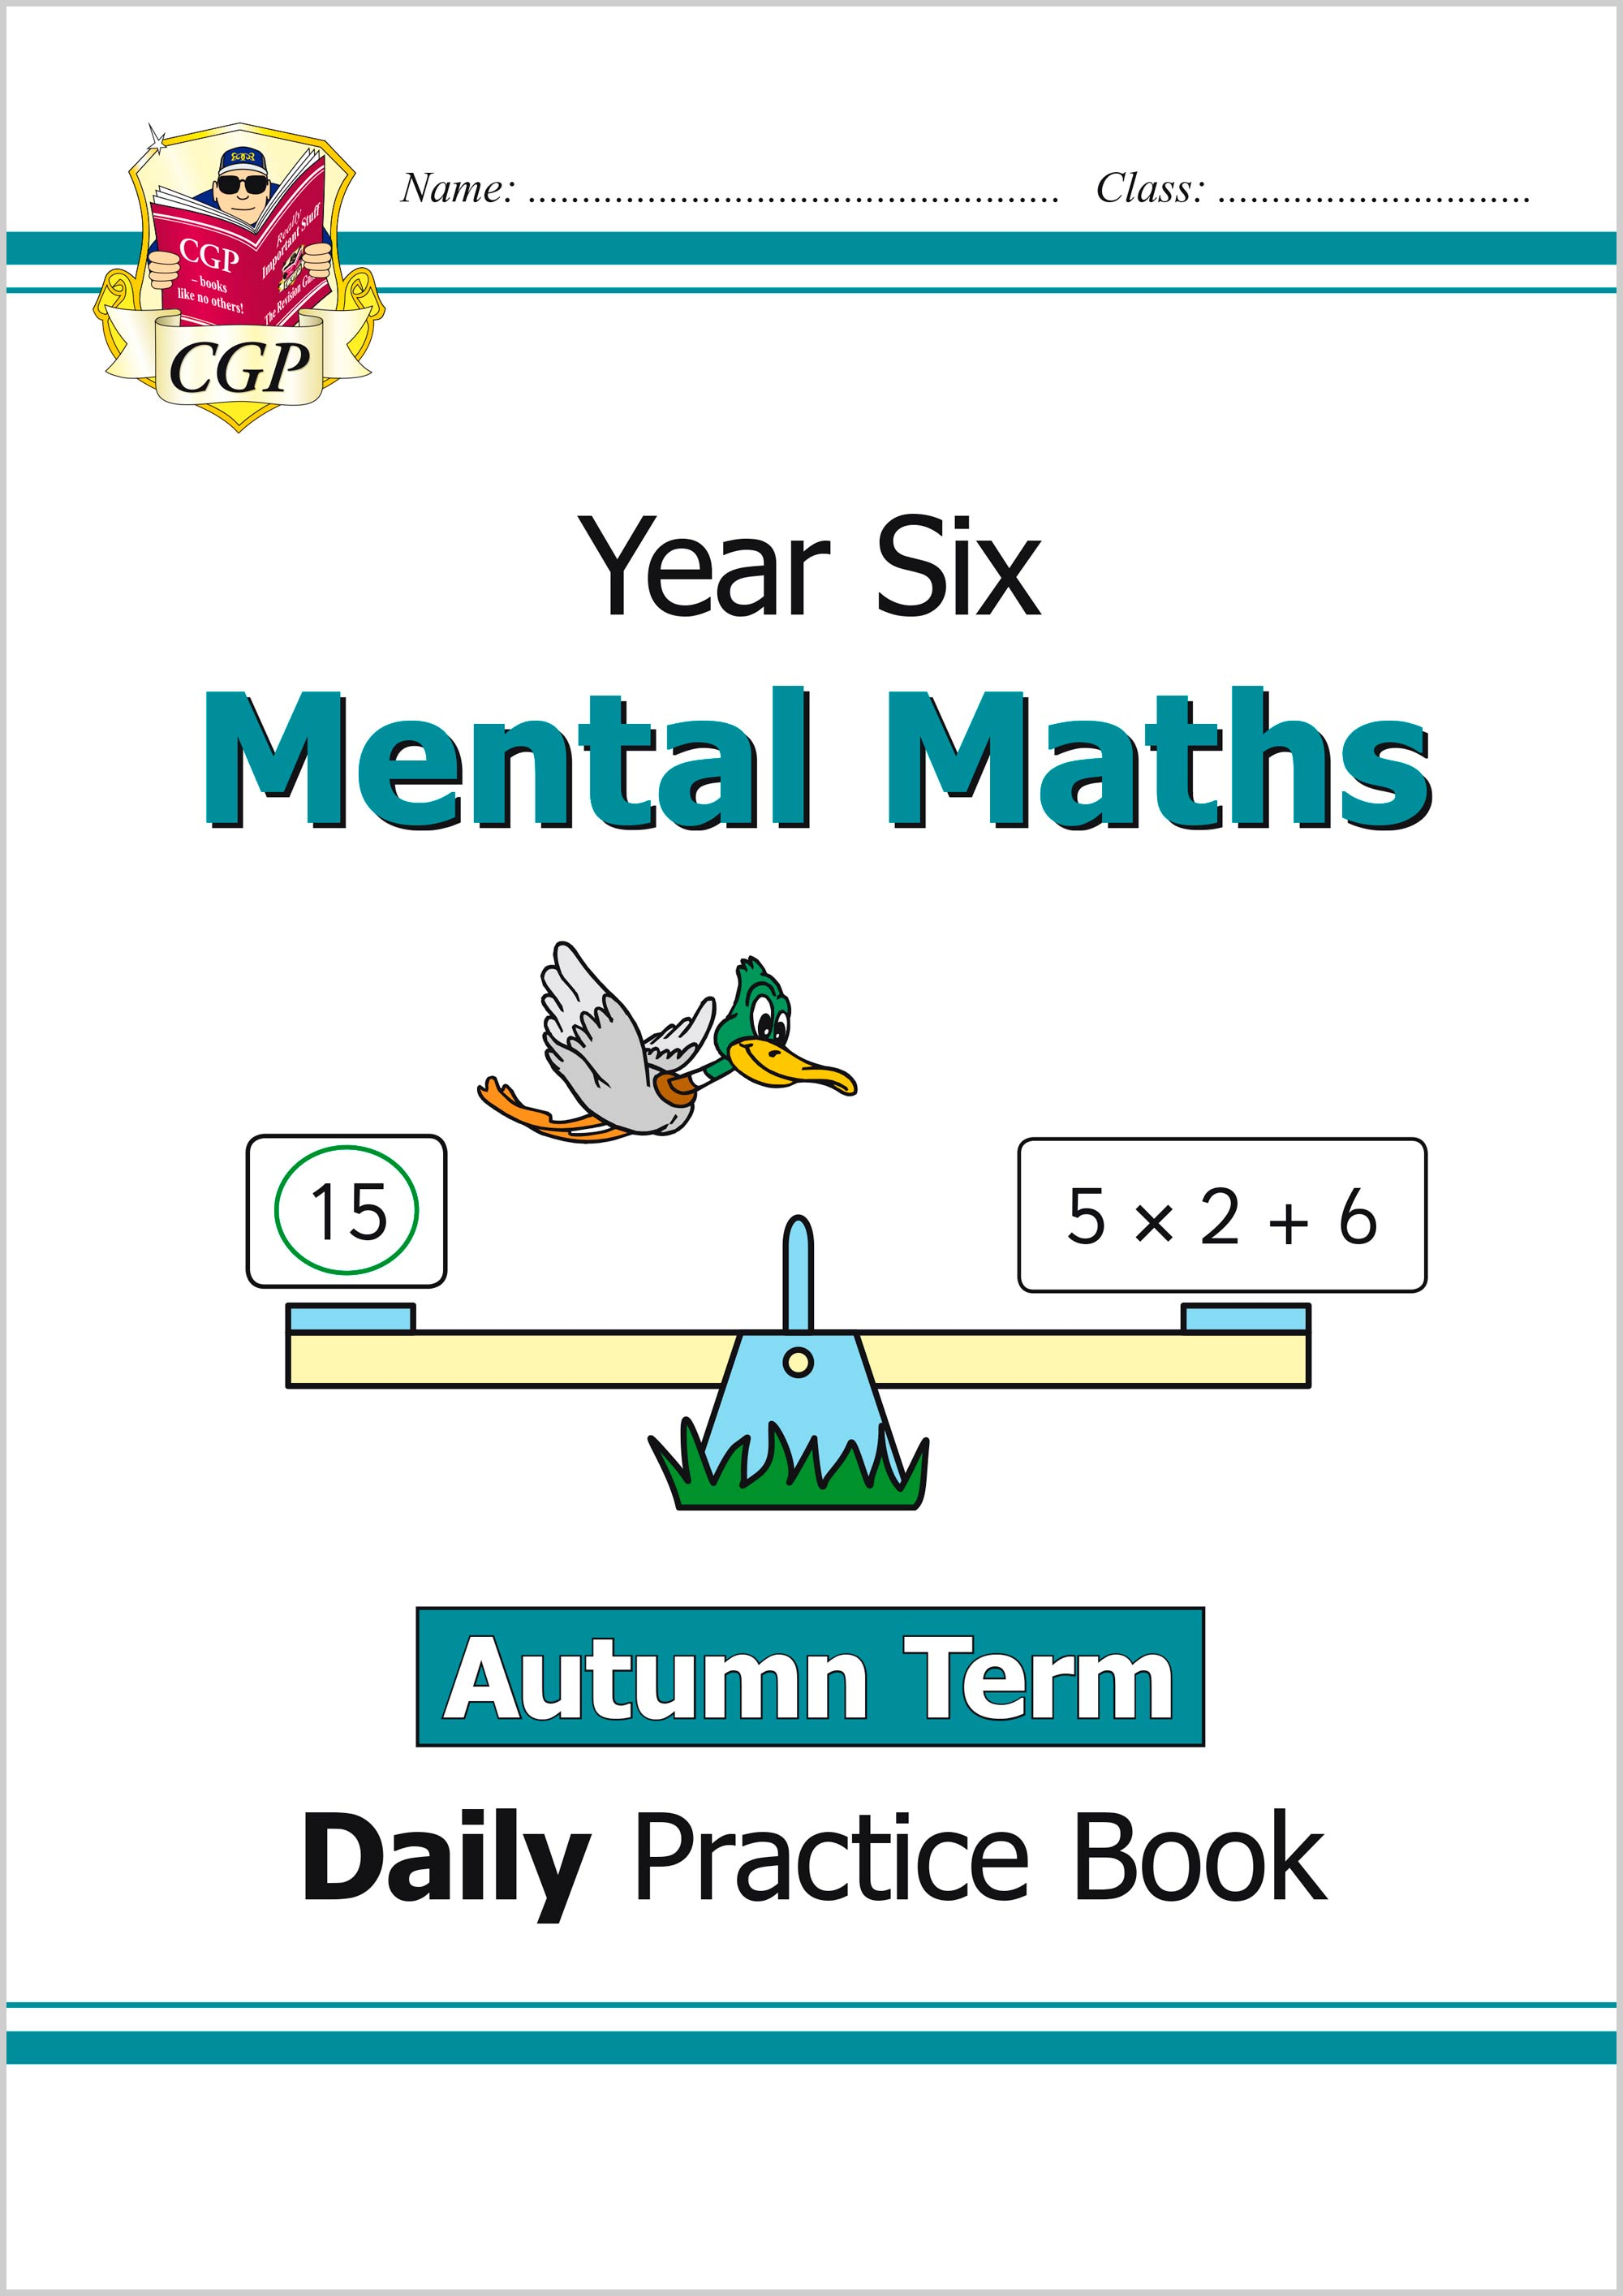 M6MWAU21 - New Mental Maths Daily Practice Book: Year 6 - Autumn Term